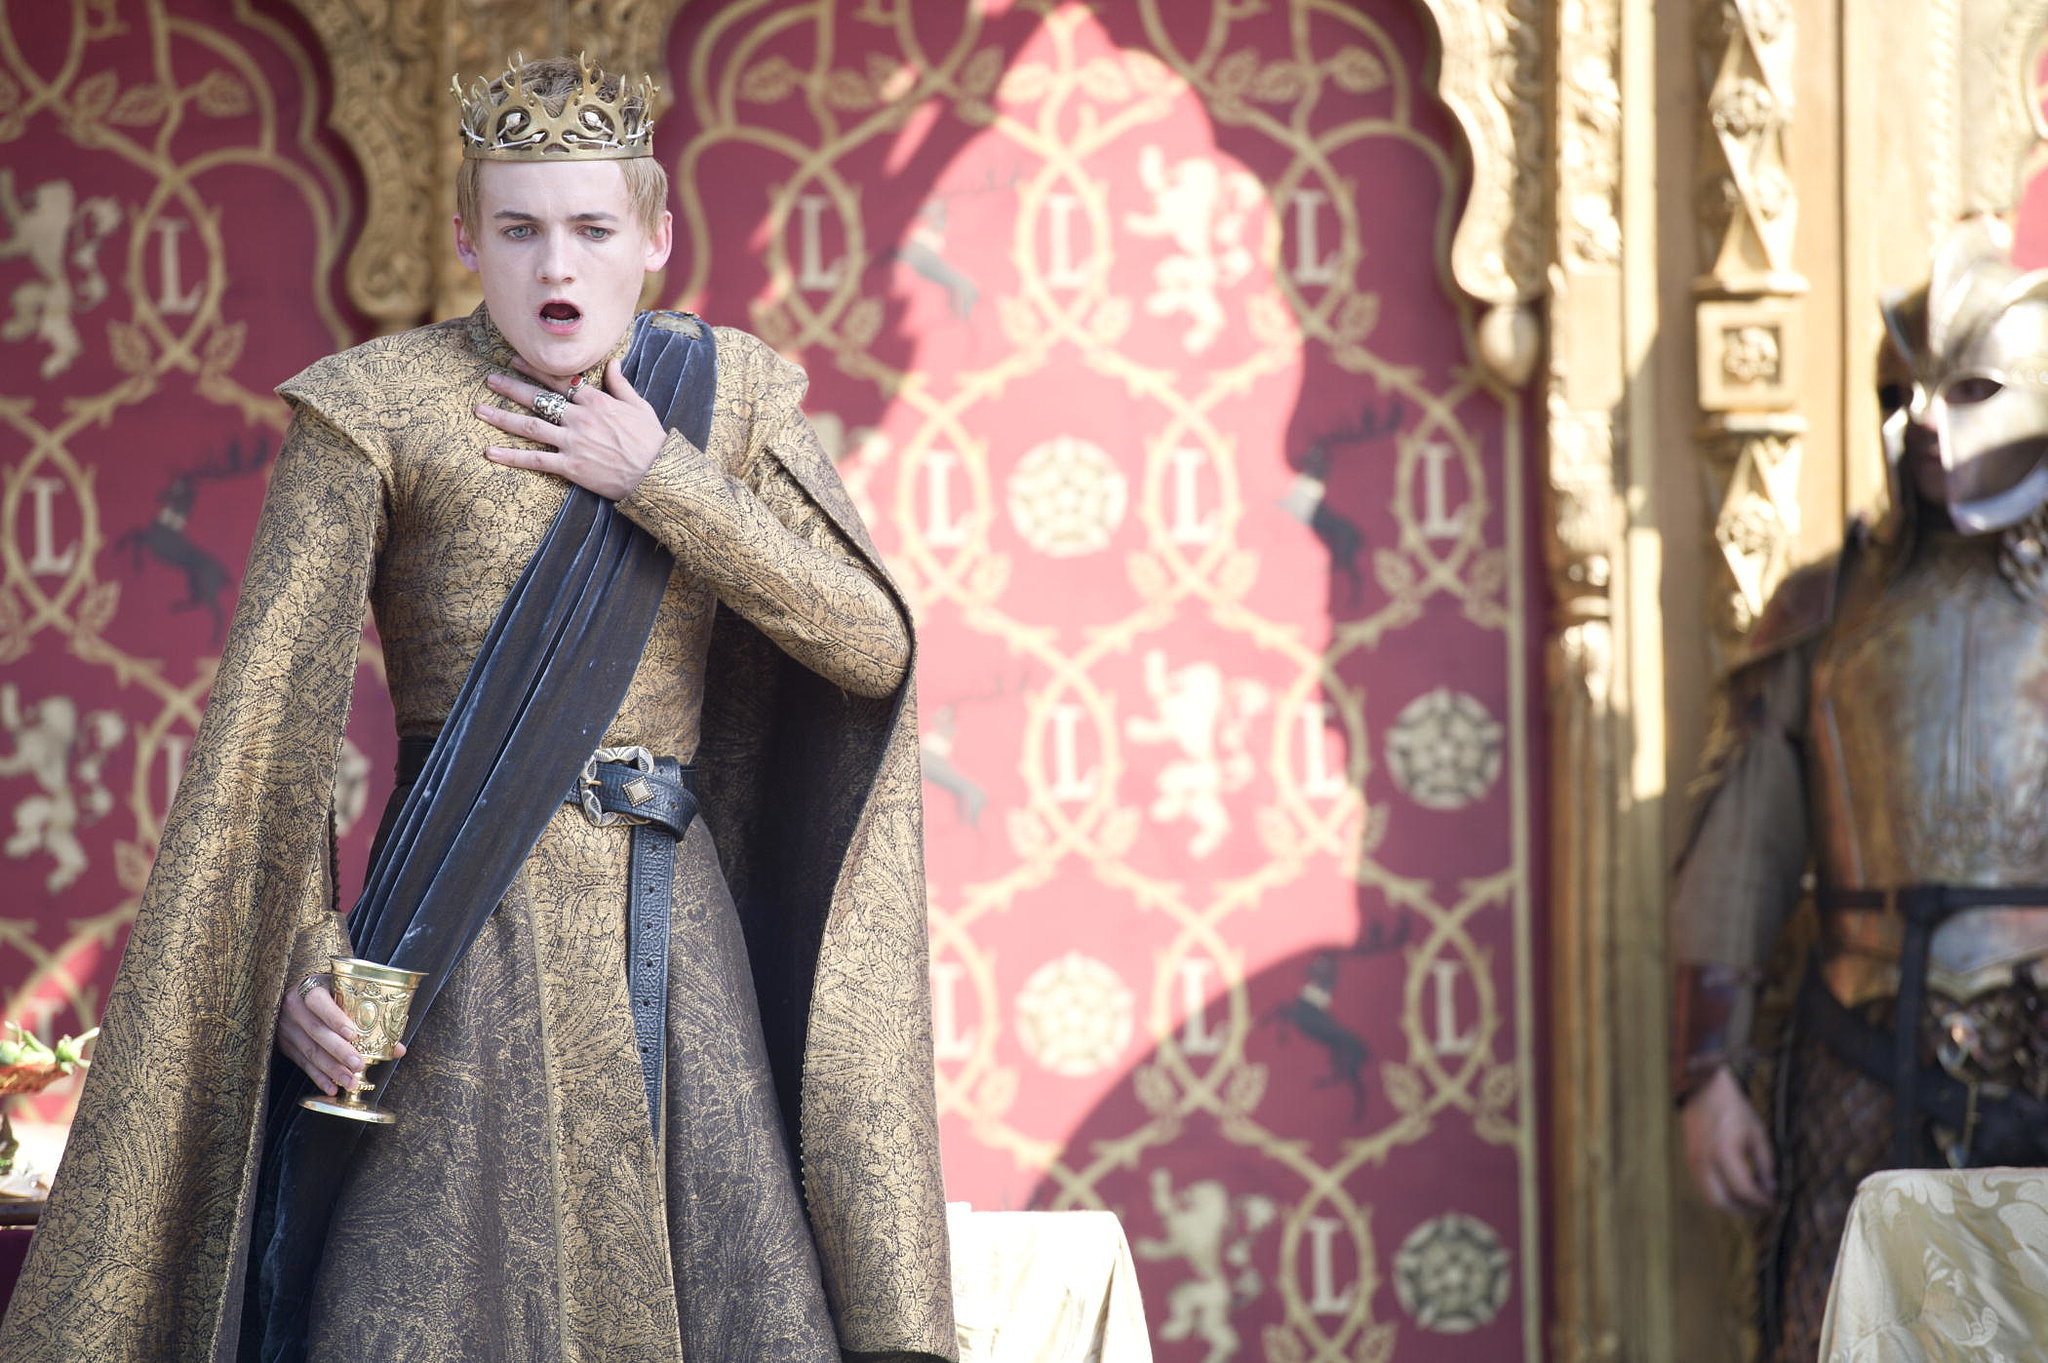 game of thrones character guide season 2